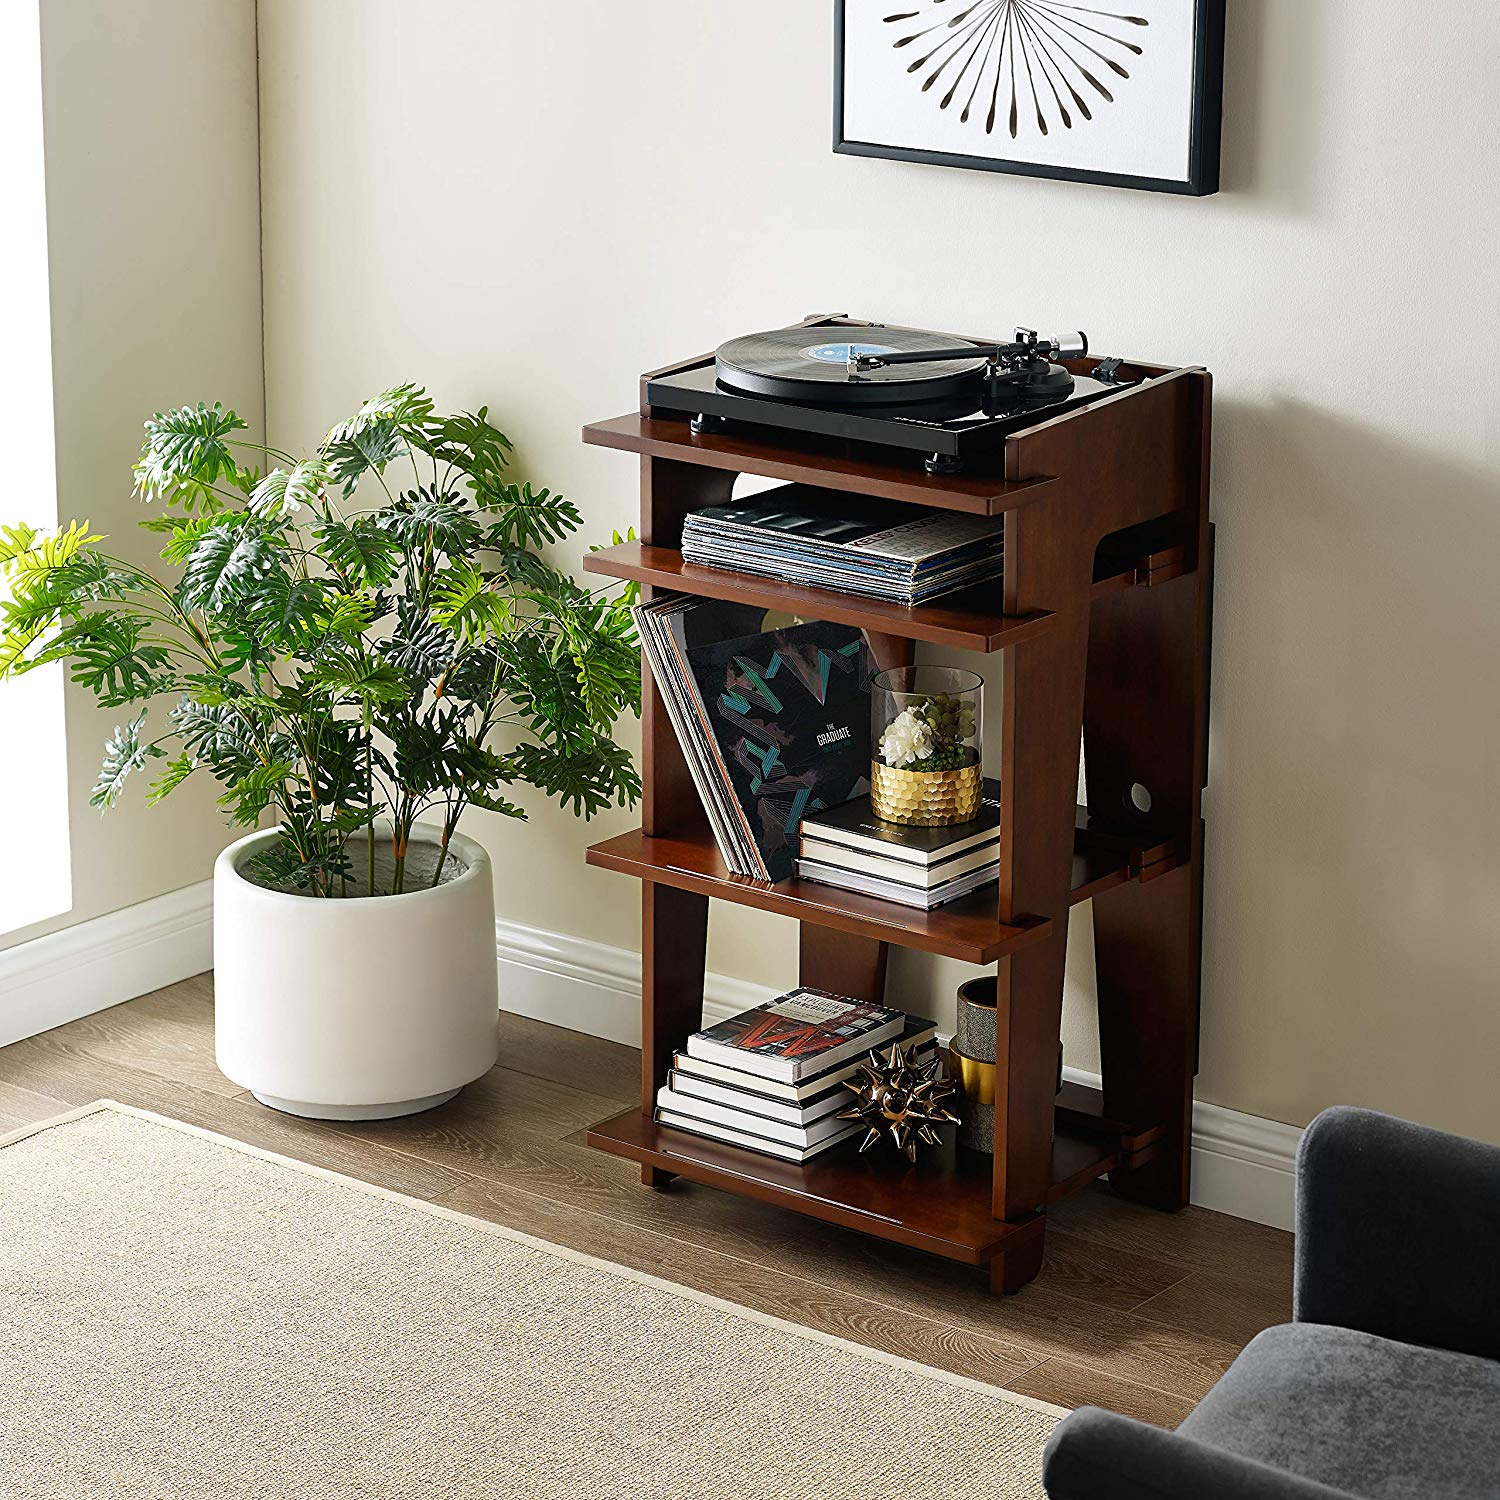 Crosley Soho Turntable and Record Stand